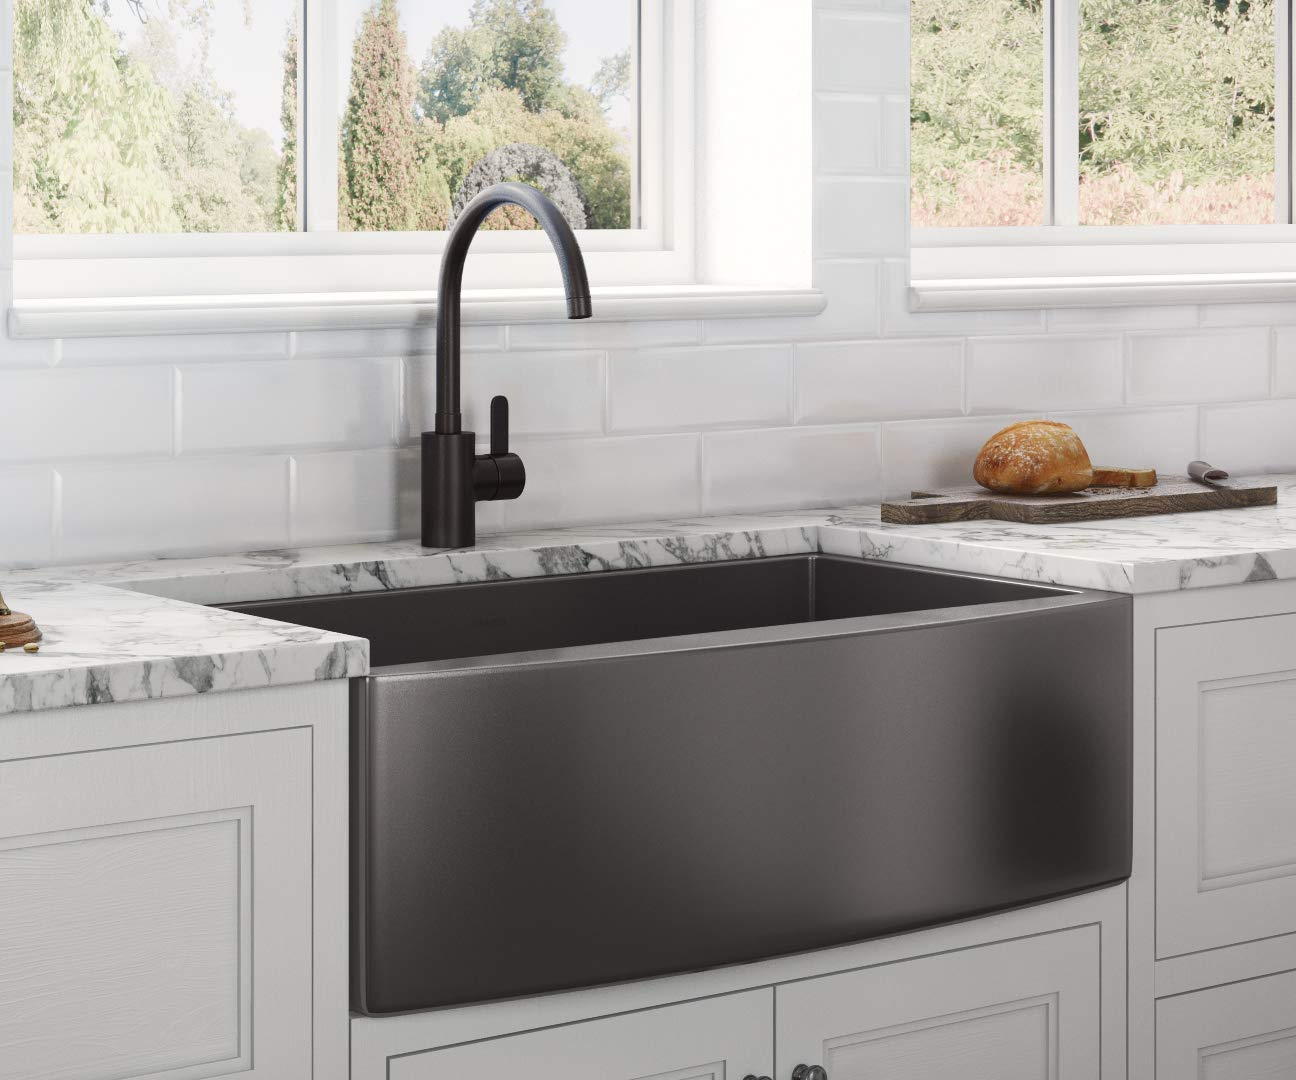 Ruvati Gunmetal Black Matte Stainless Steel 33-inch Apron-Front Farmhouse Kitchen Sink - Single Bowl - RVH9733BL